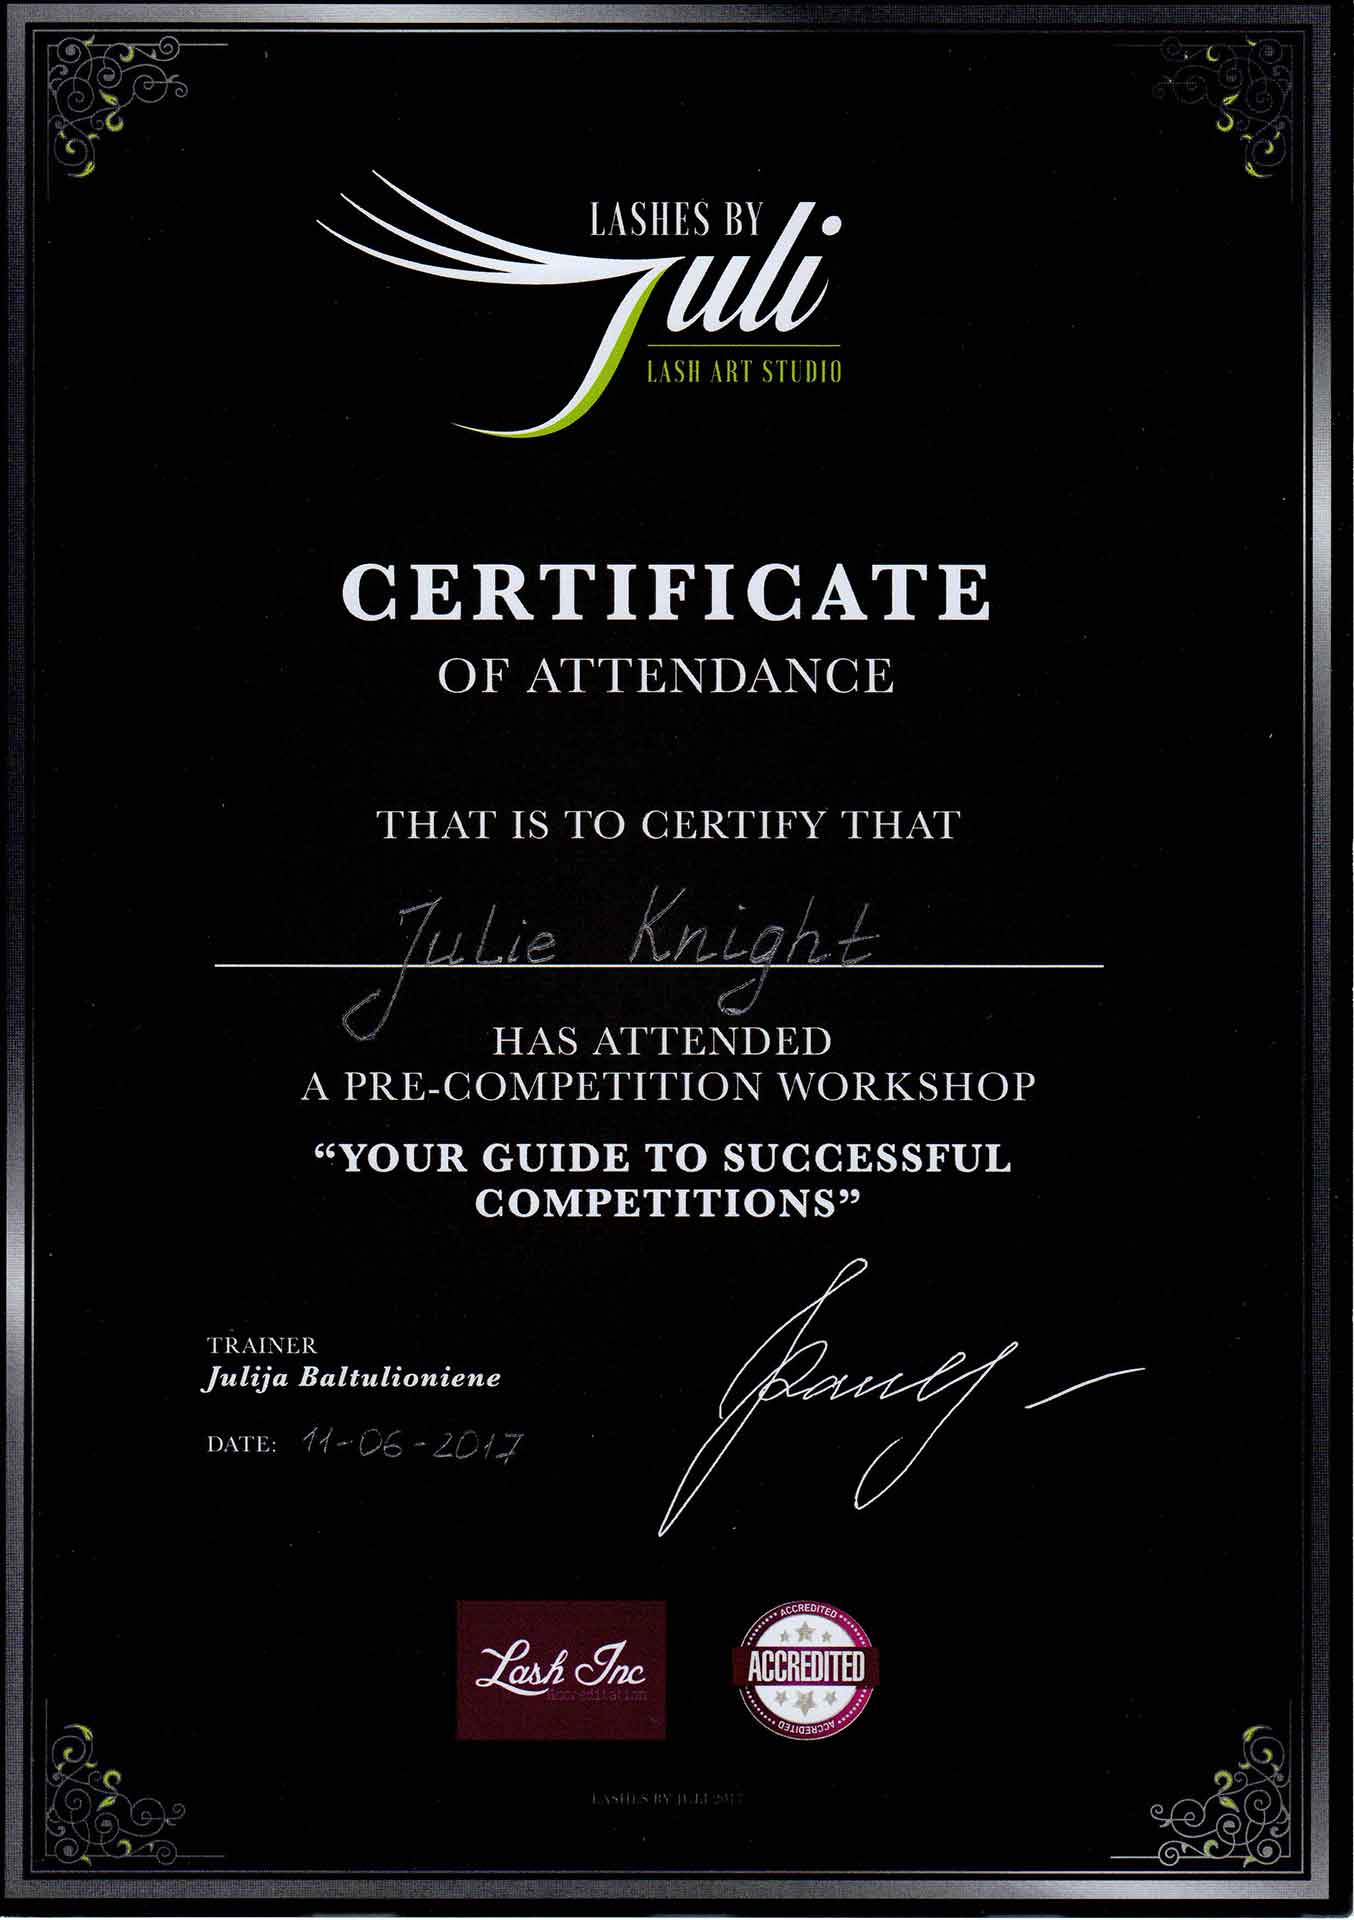 Julie-Knight-Lashes-By-Juli-Competition-Training-Certificate